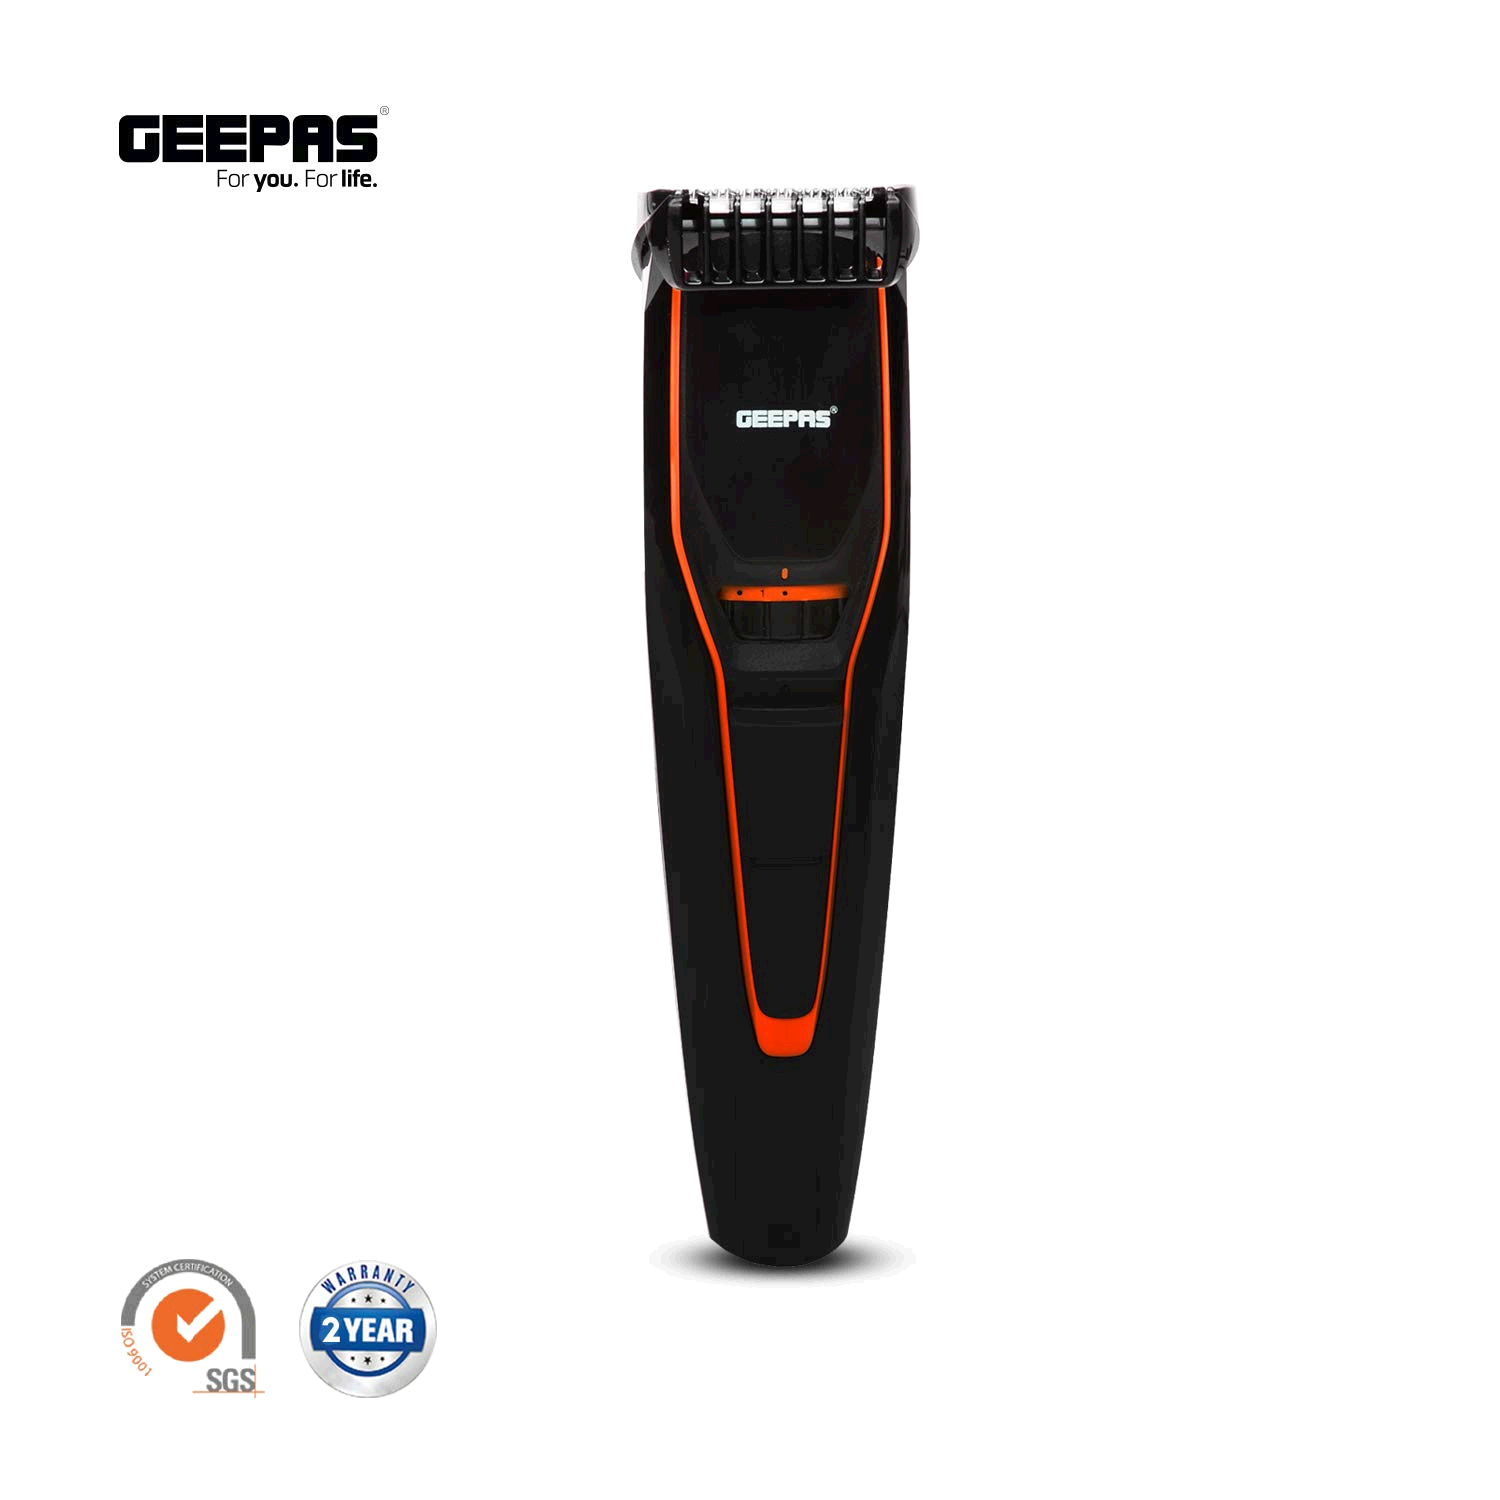 Geepas Stubble Trimmer 0.5mm To 10mm Orange